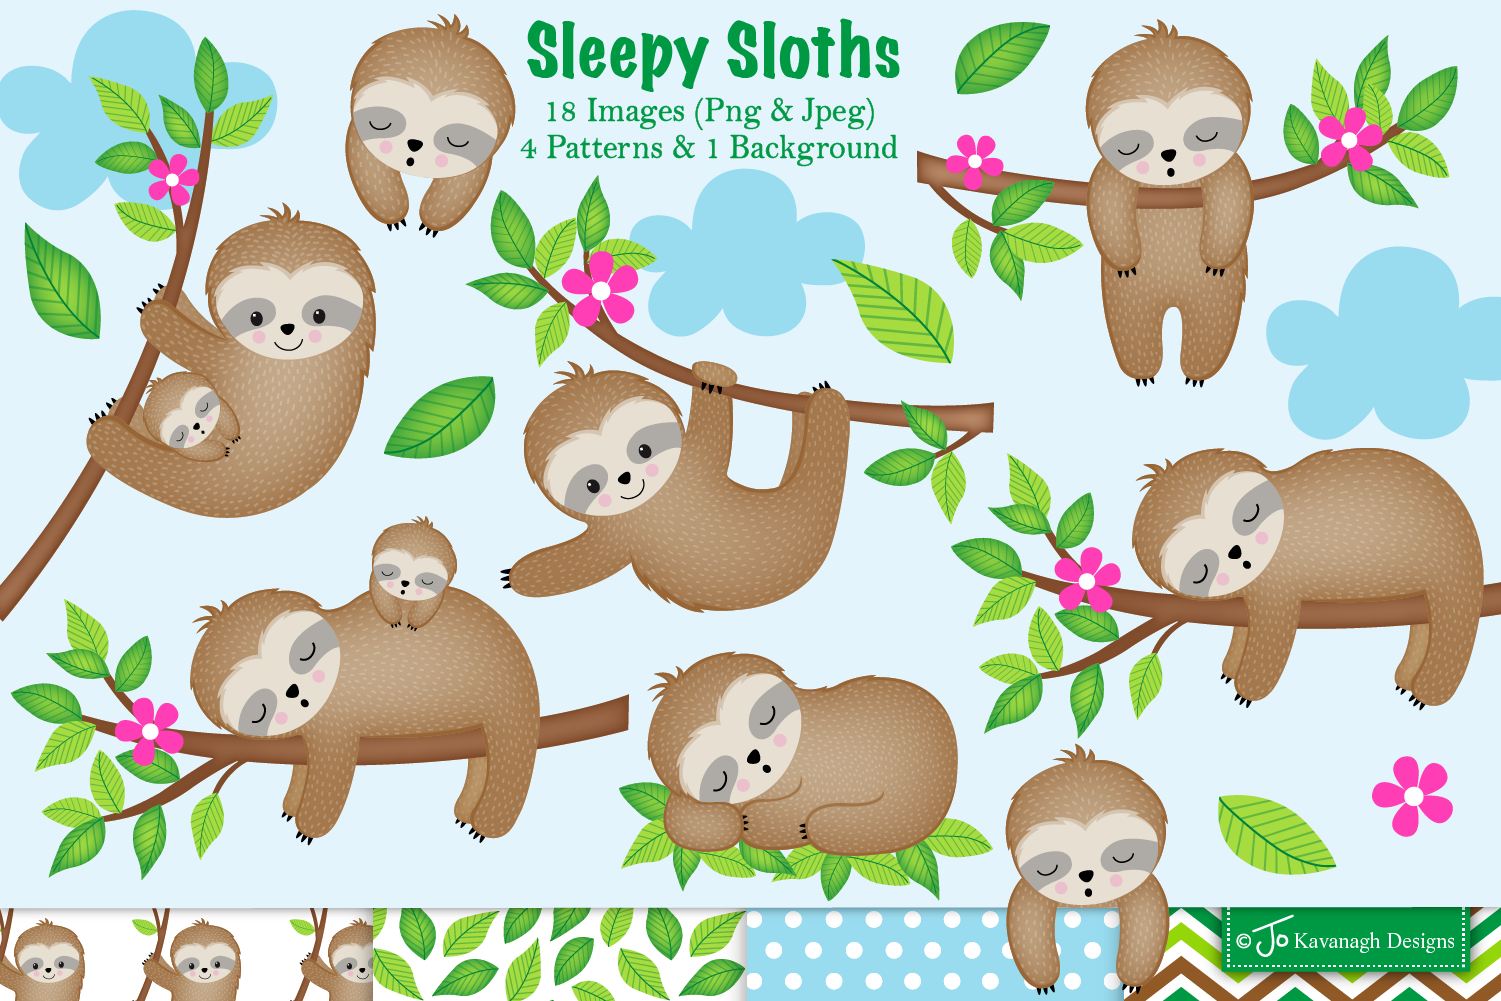 Sloth clipart,Sloth graphics & illustrations,Cute Sloths C28.